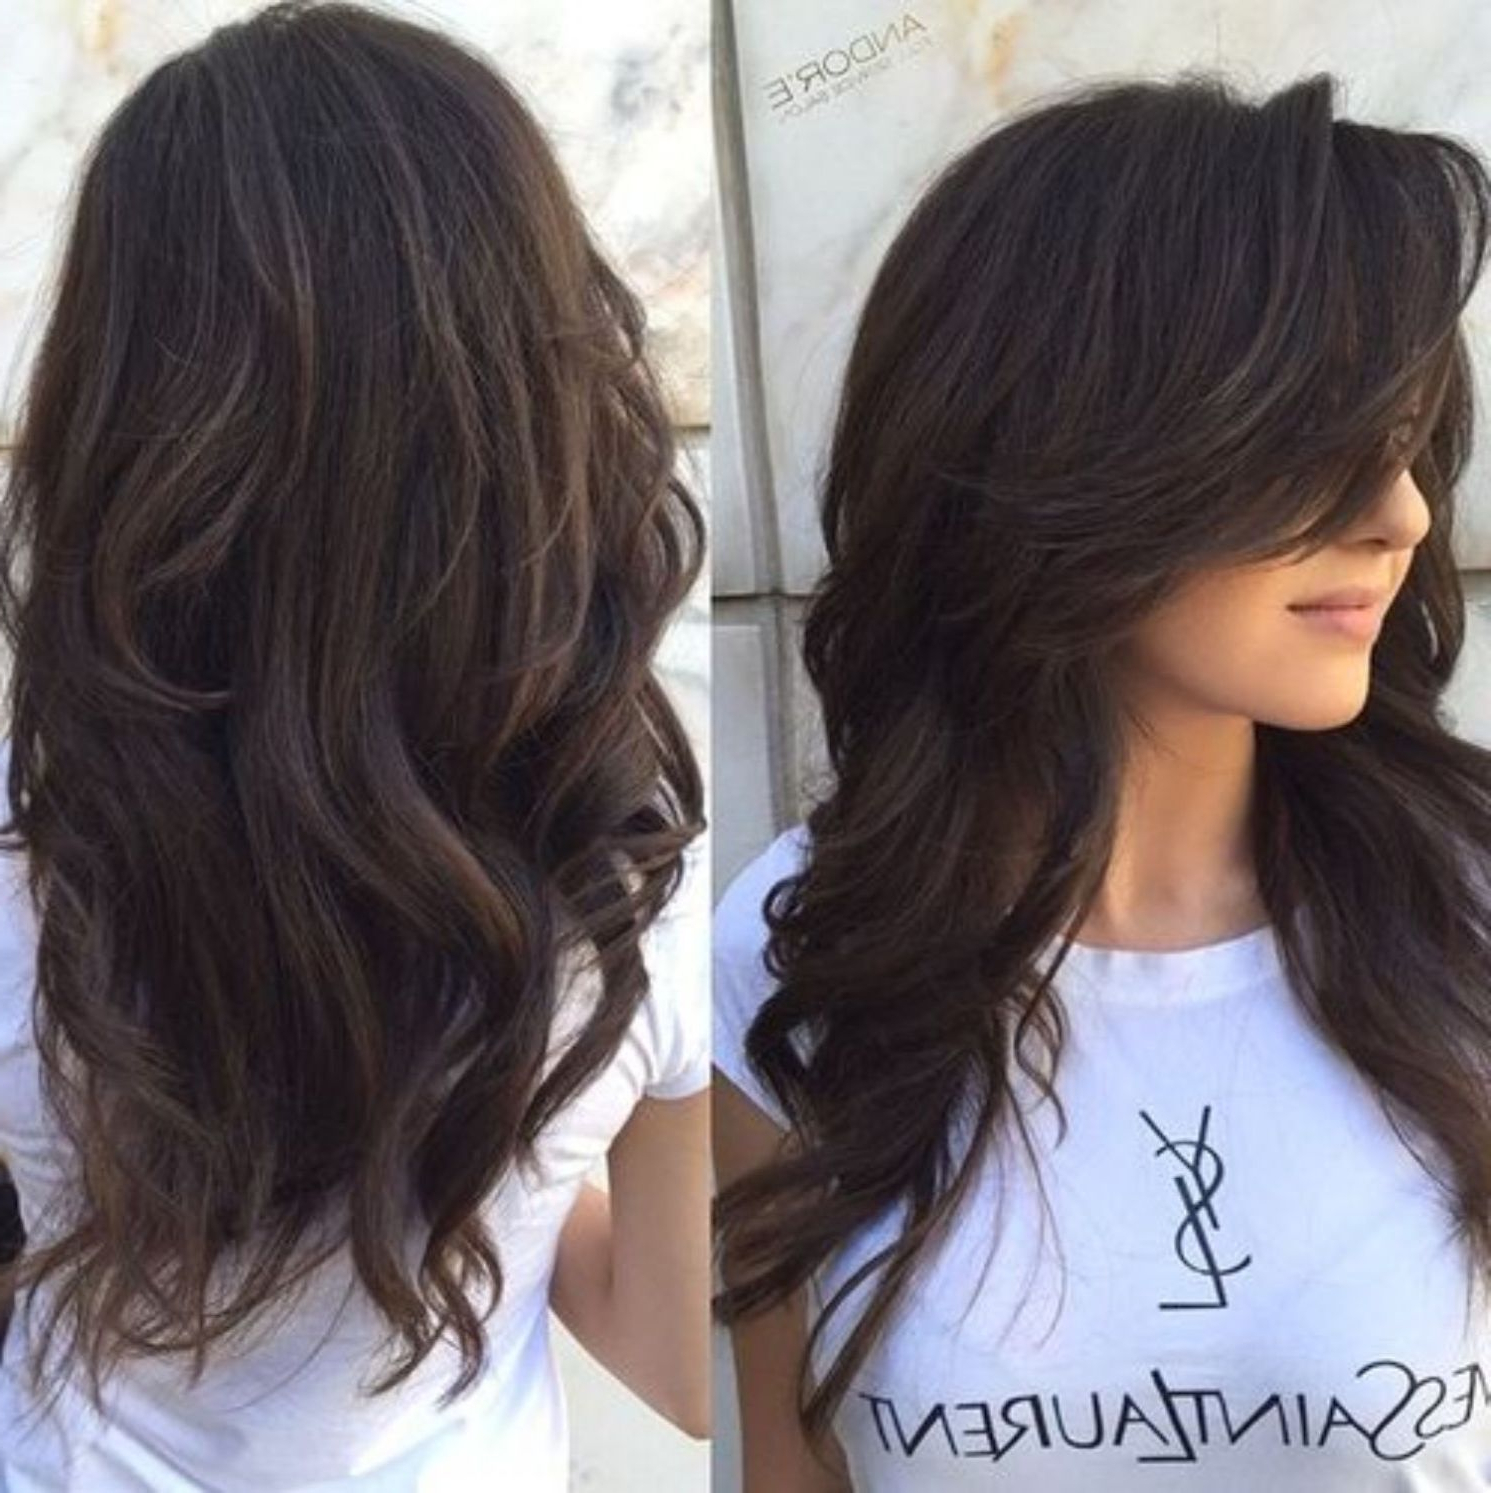 Famous Messy Loose Curls Long Hairstyles With Voluminous Bangs Intended For 80 Cute Layered Hairstyles And Cuts For Long Hair In (View 11 of 20)